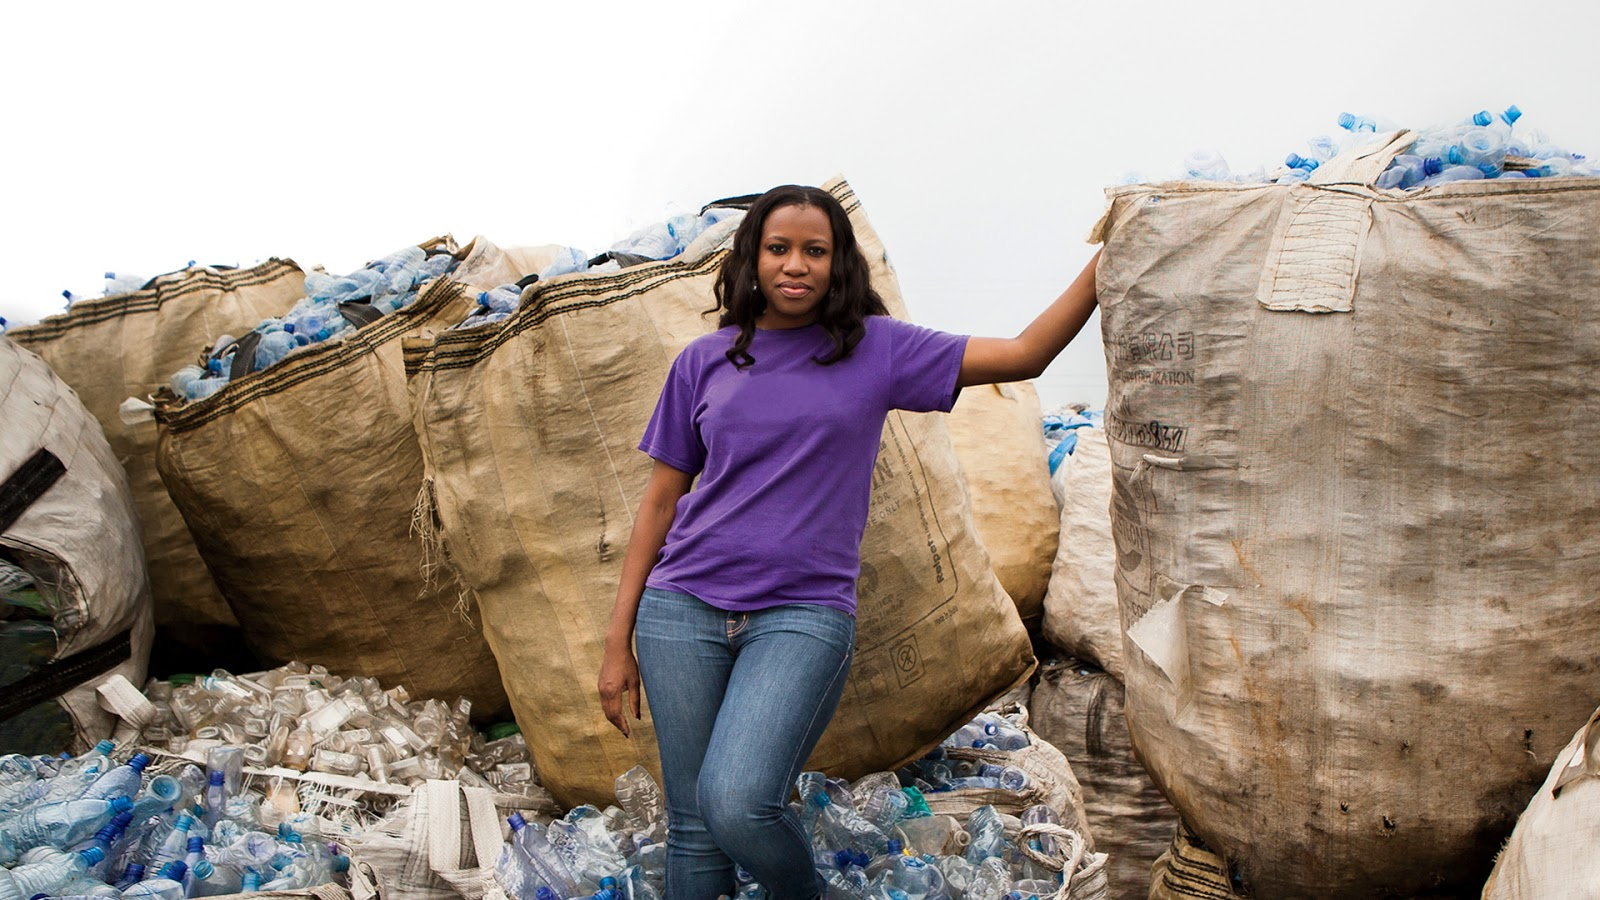 In the bag: Wecyclers founder Bilikiss Adebiyi-Abiola came up with the idea for the recycling start-up while studying for an MBA at the Massachusetts Institute of Technology. Picture: SUPPLIED